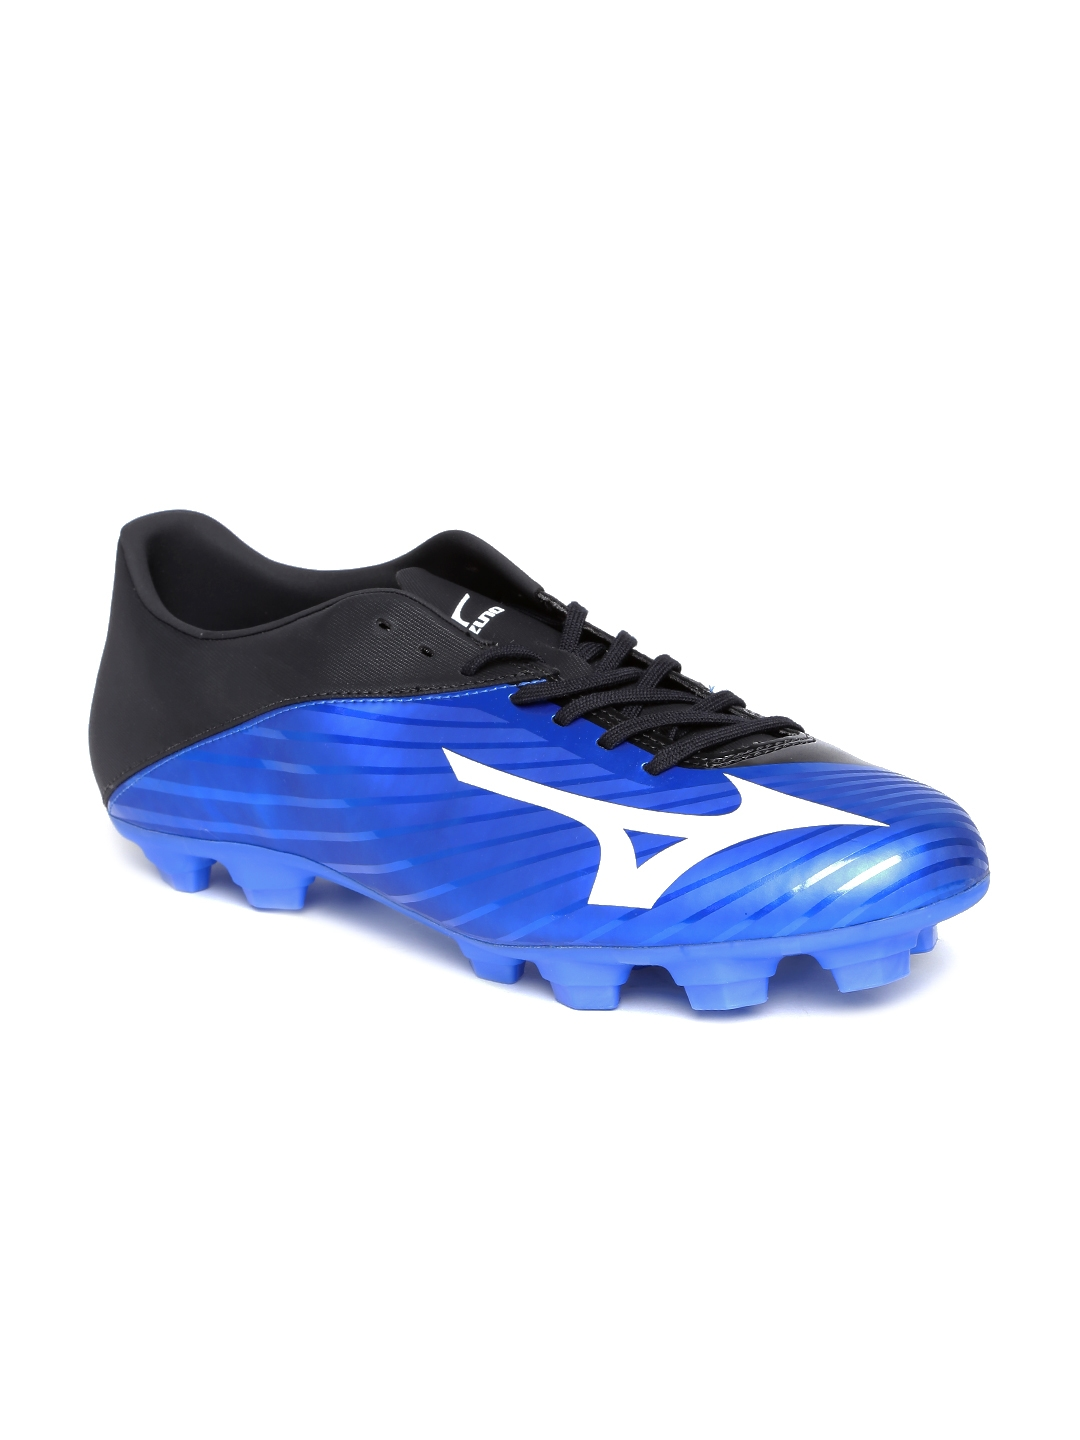 9fef4fb0b8e Buy Mizuno Men Blue   Black BASARA 103 MD Football Shoes - Sports ...